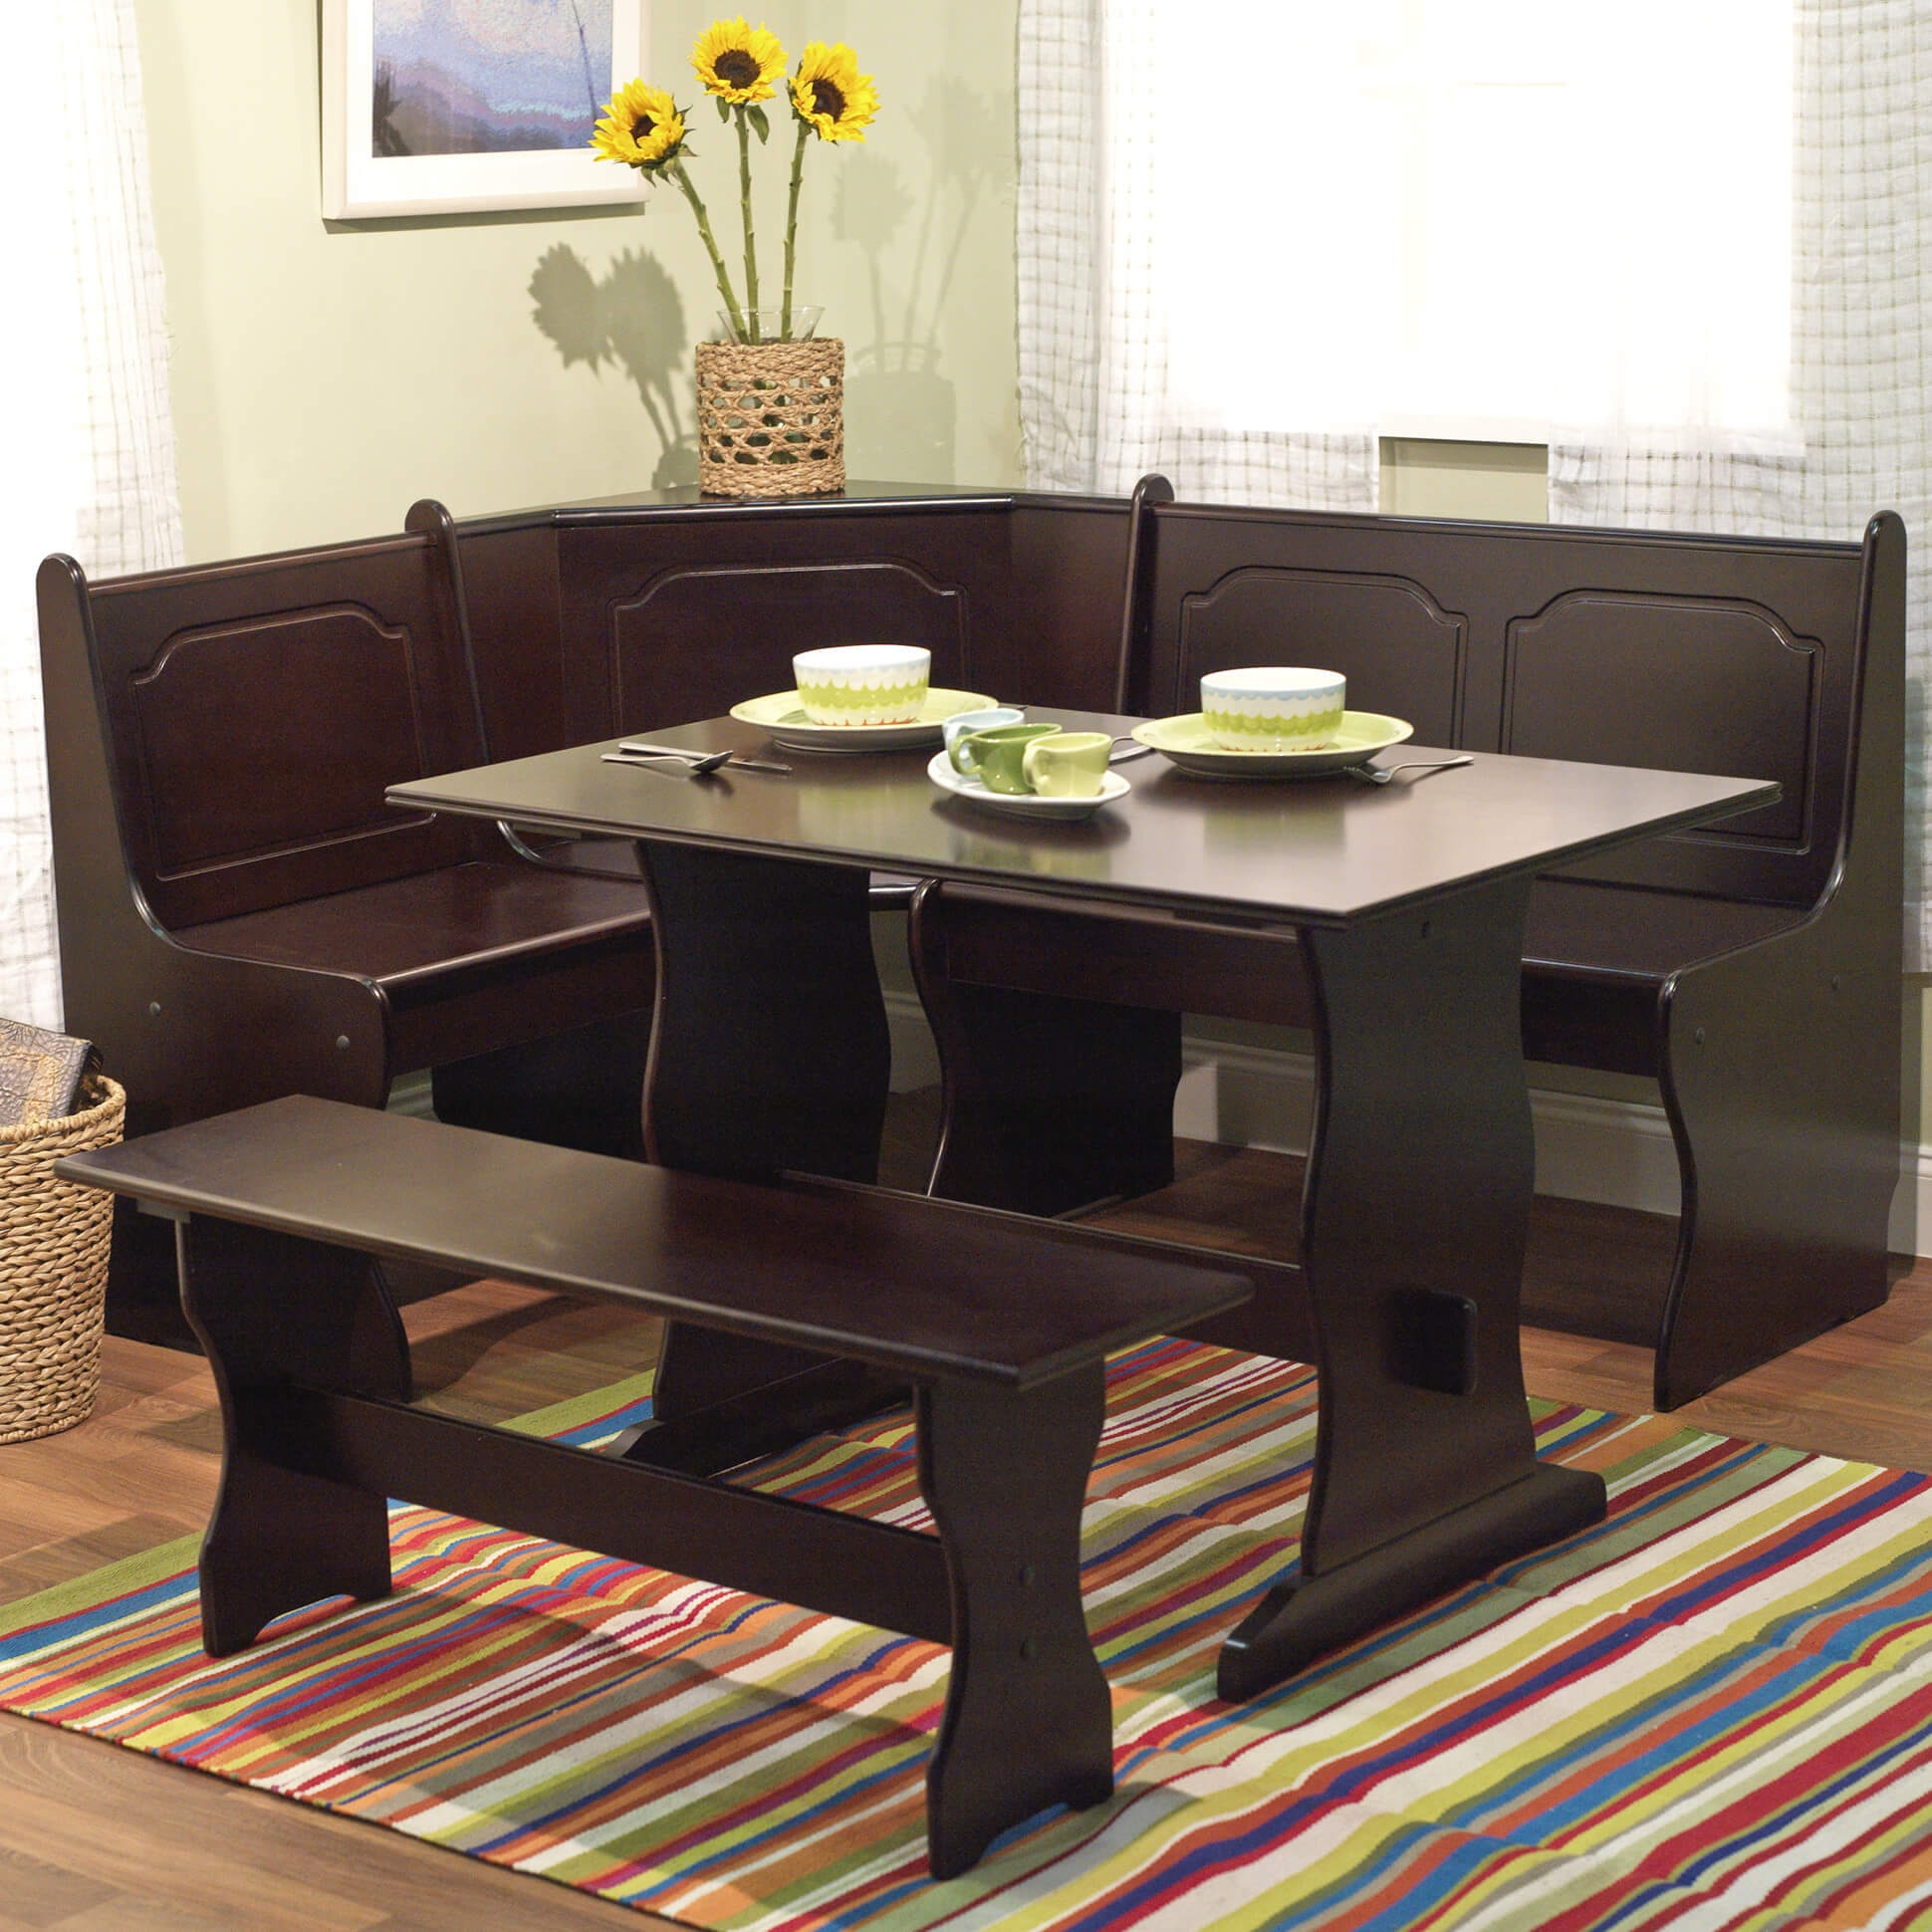 Permalink to Kitchen Corner Bench And Table Set